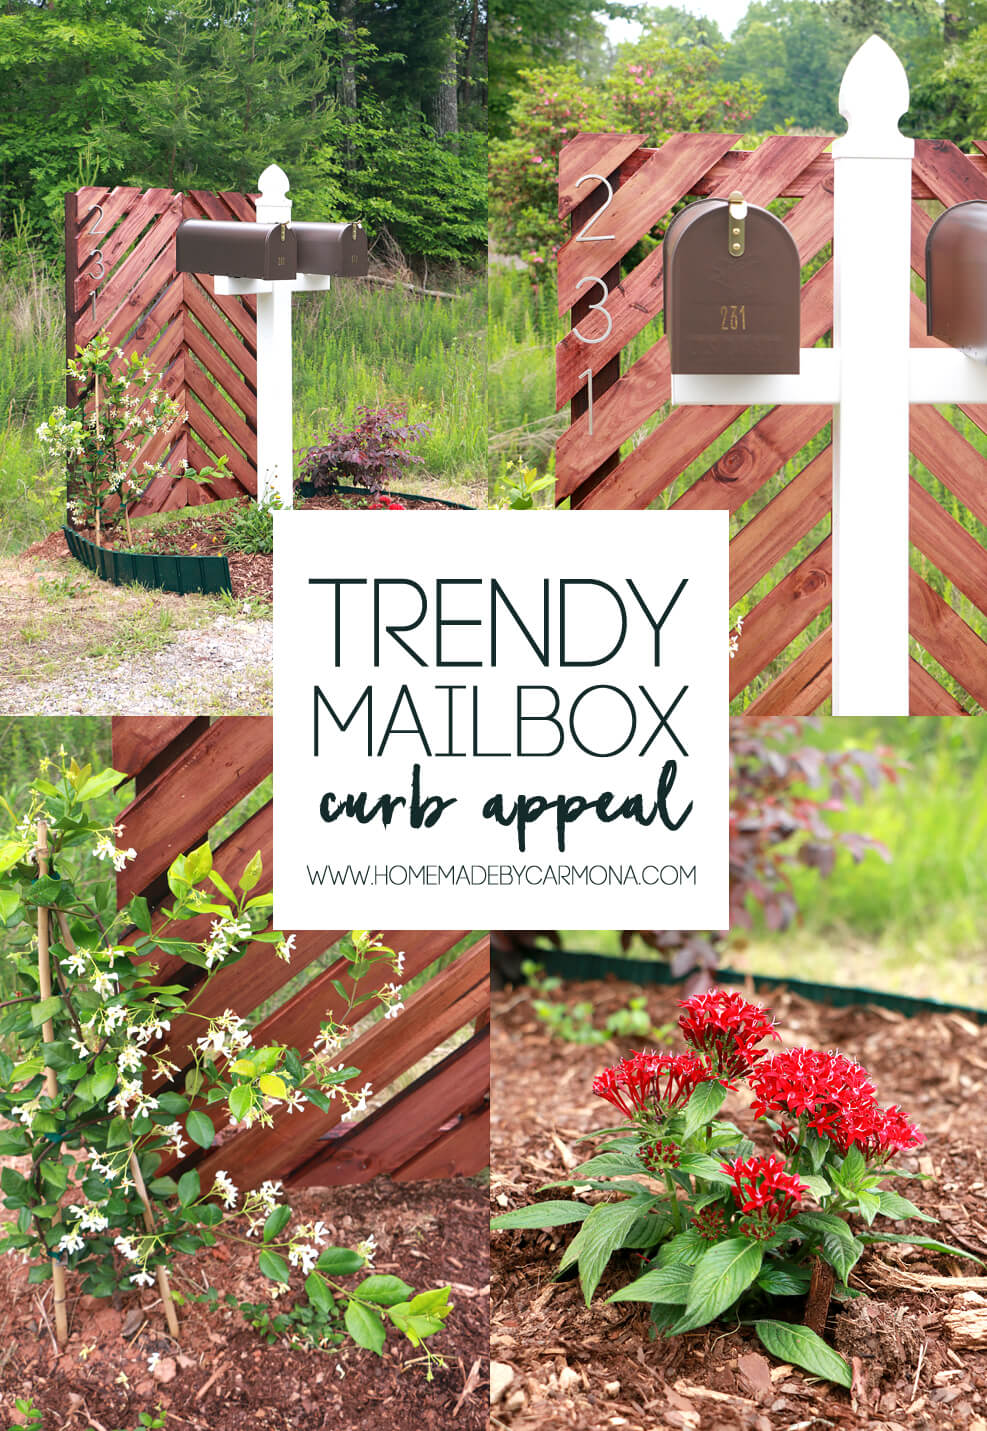 DIY Trendy Mailbox Curb Appeal Tips